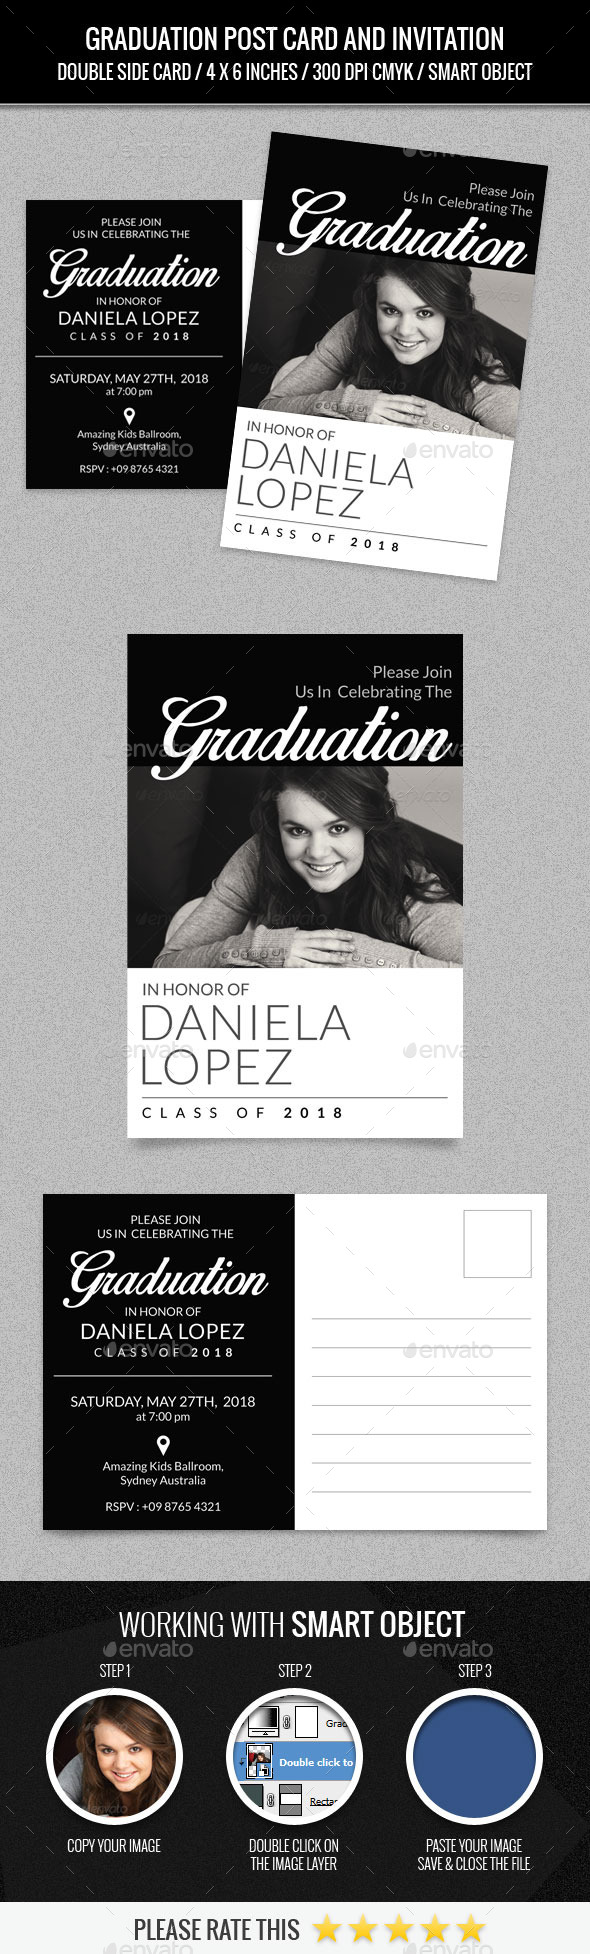 Graduation Party Post Card Template - Cards & Invites Print Templates